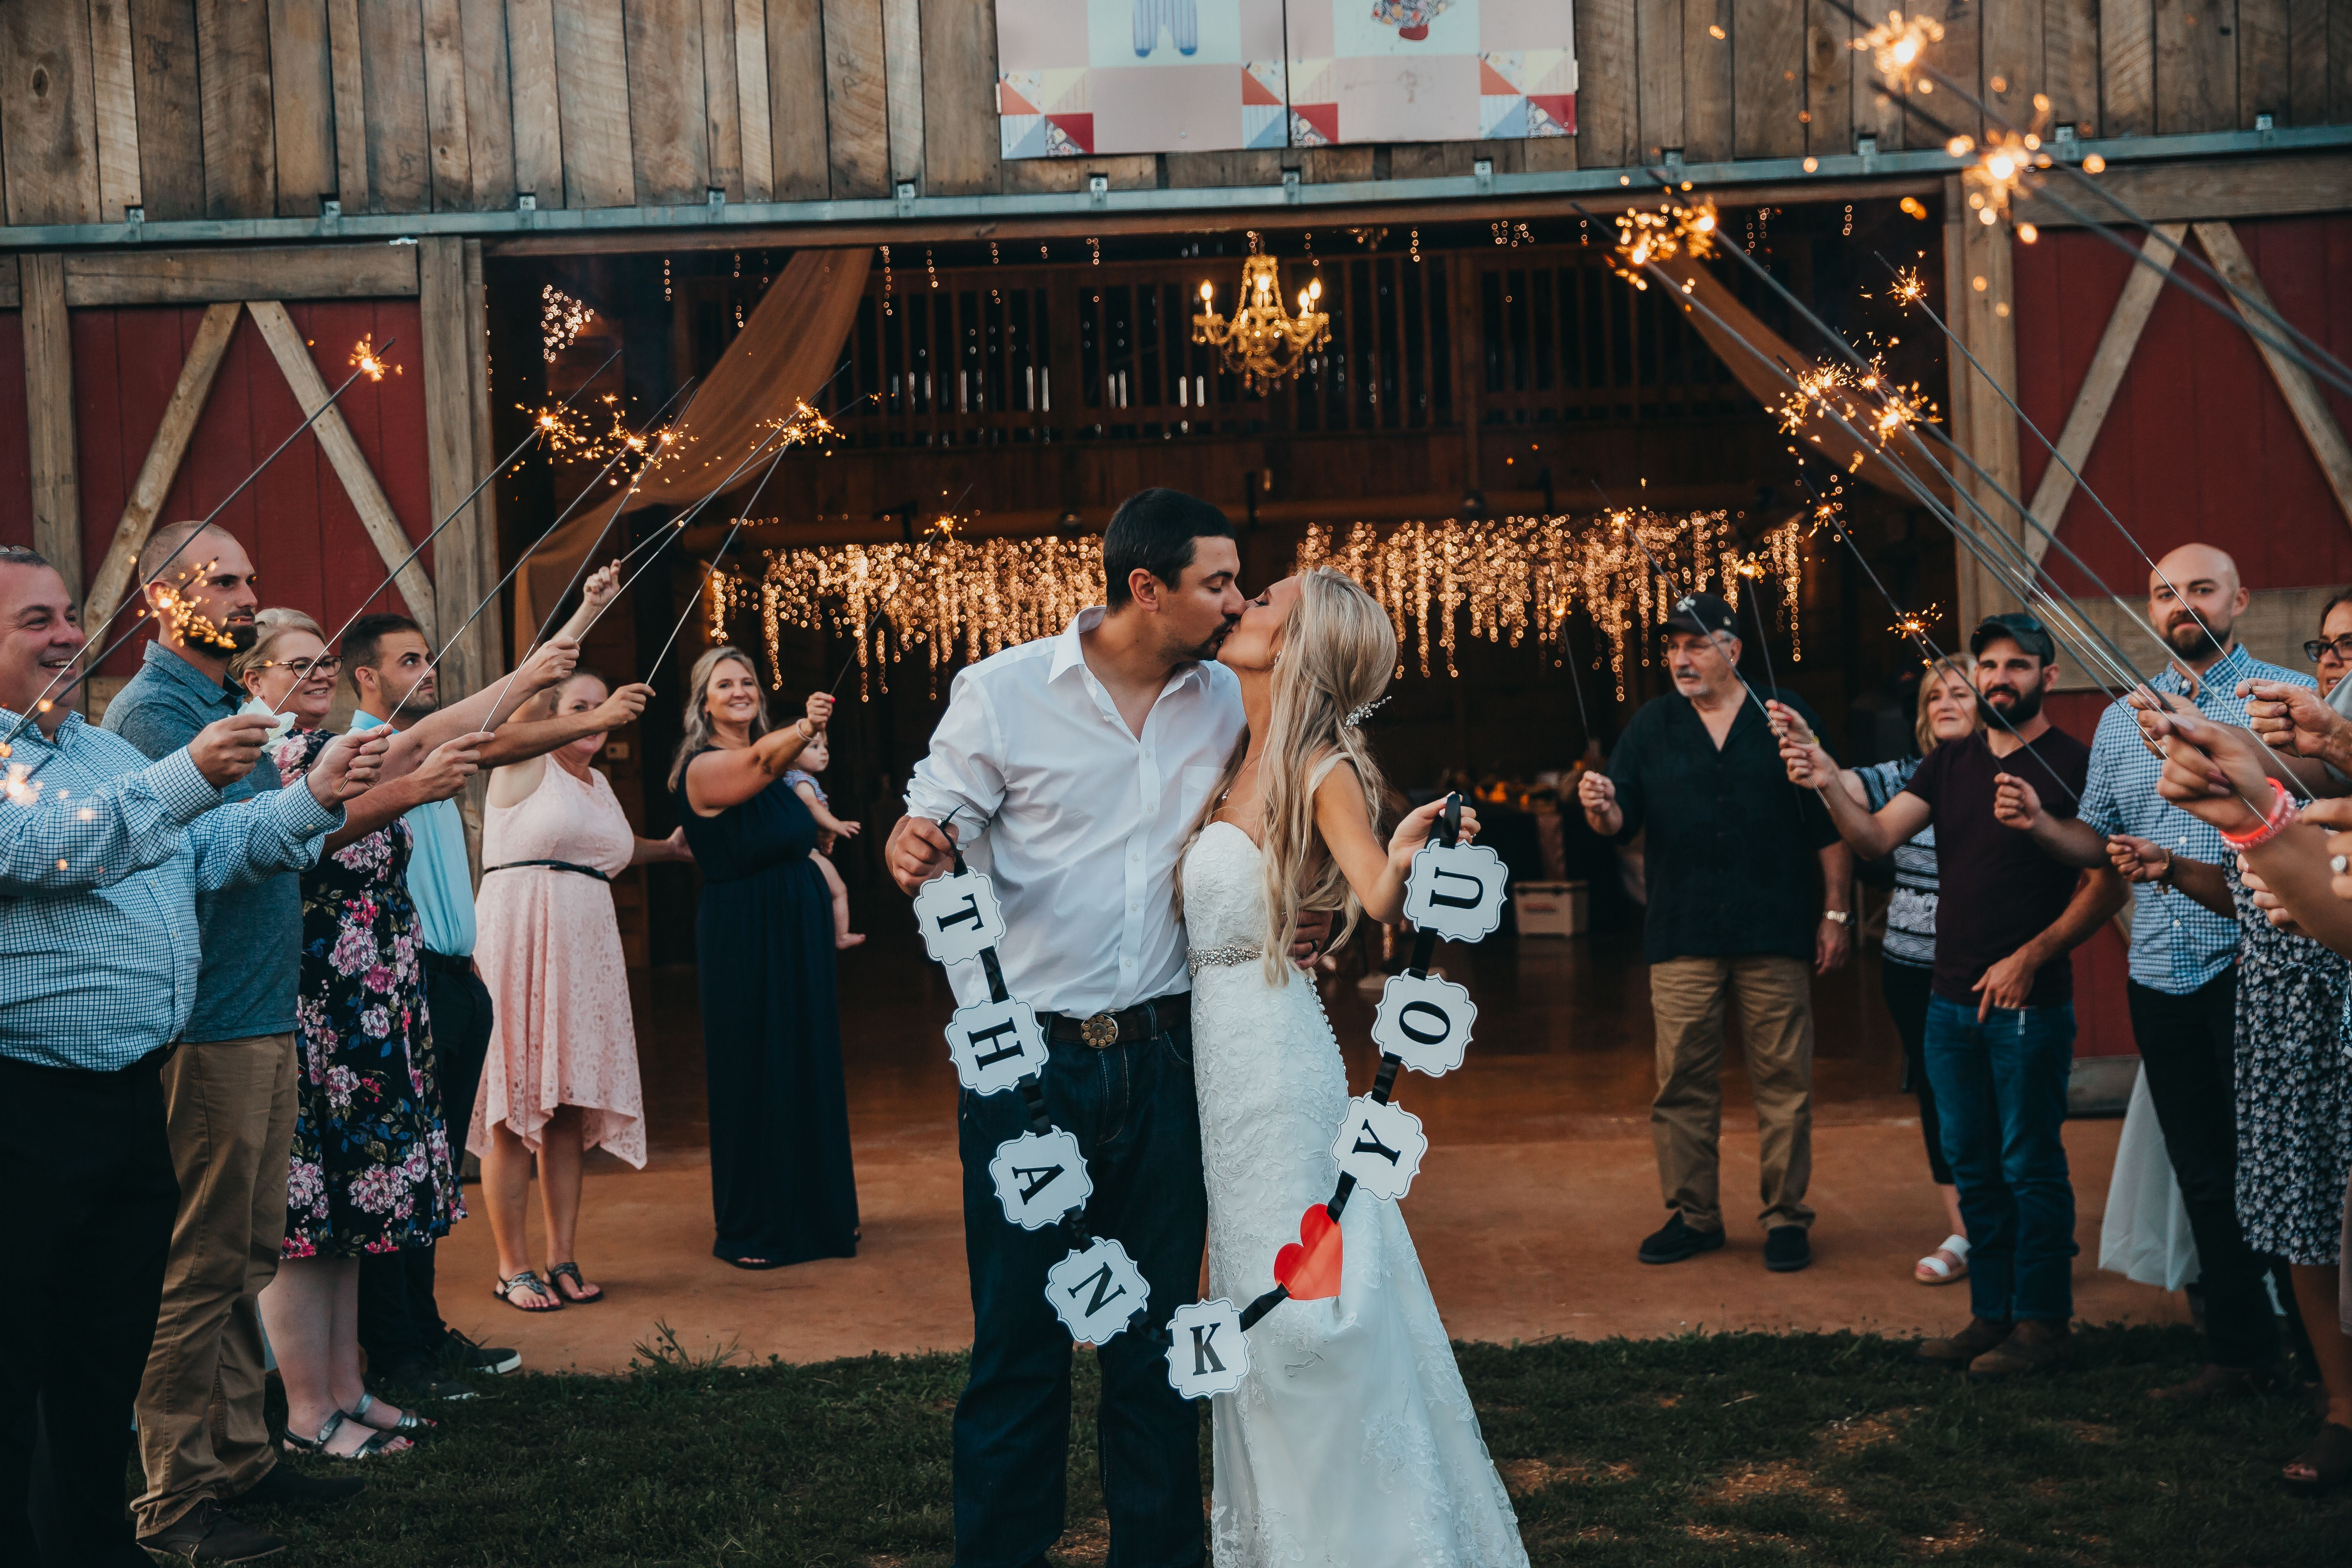 Whether You Choose To Have A Small Intimate Wedding Or A Large Celebration For The World To See Our We In 2020 Small Intimate Wedding Wedding Sparklers Long Sparklers